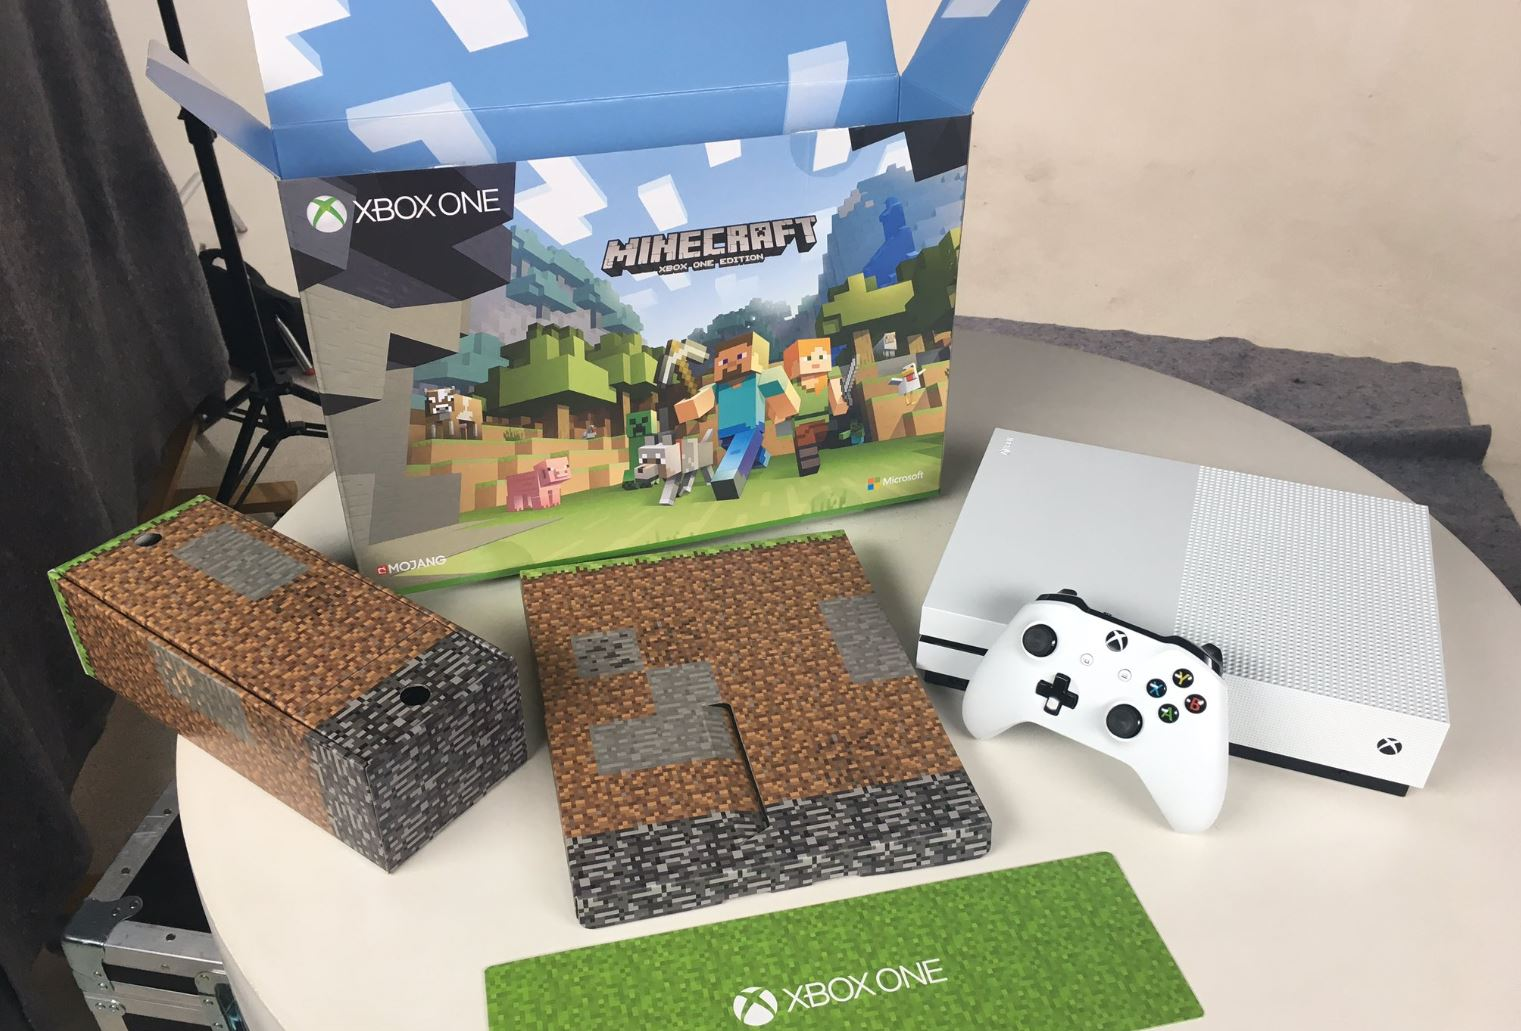 xbox one s owner manual